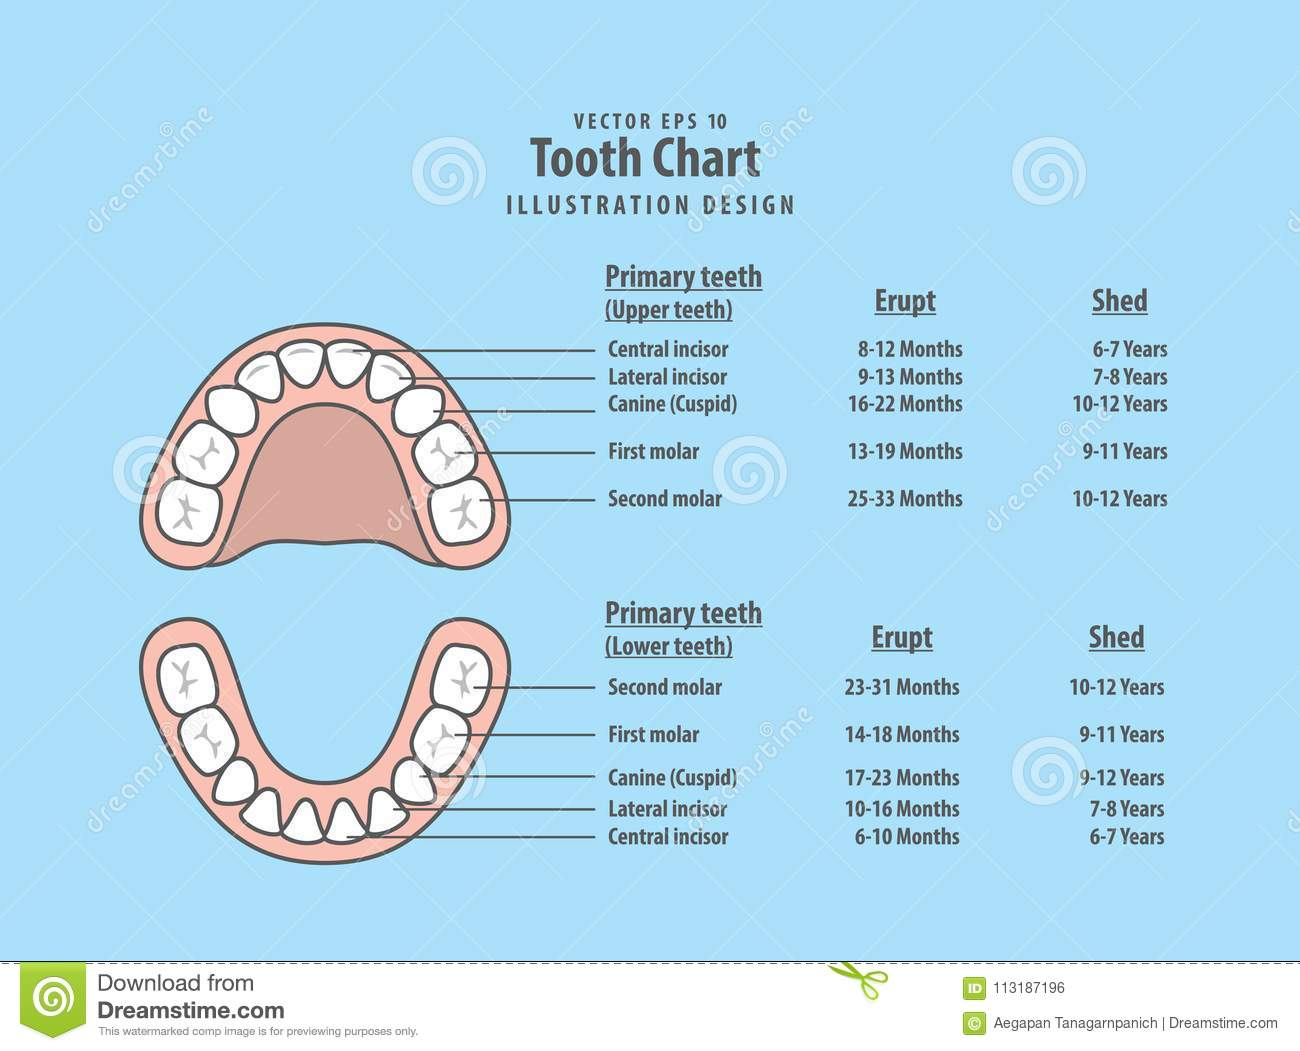 Tooth chart primary teeth with erupt shed illustration vector download comp ccuart Images